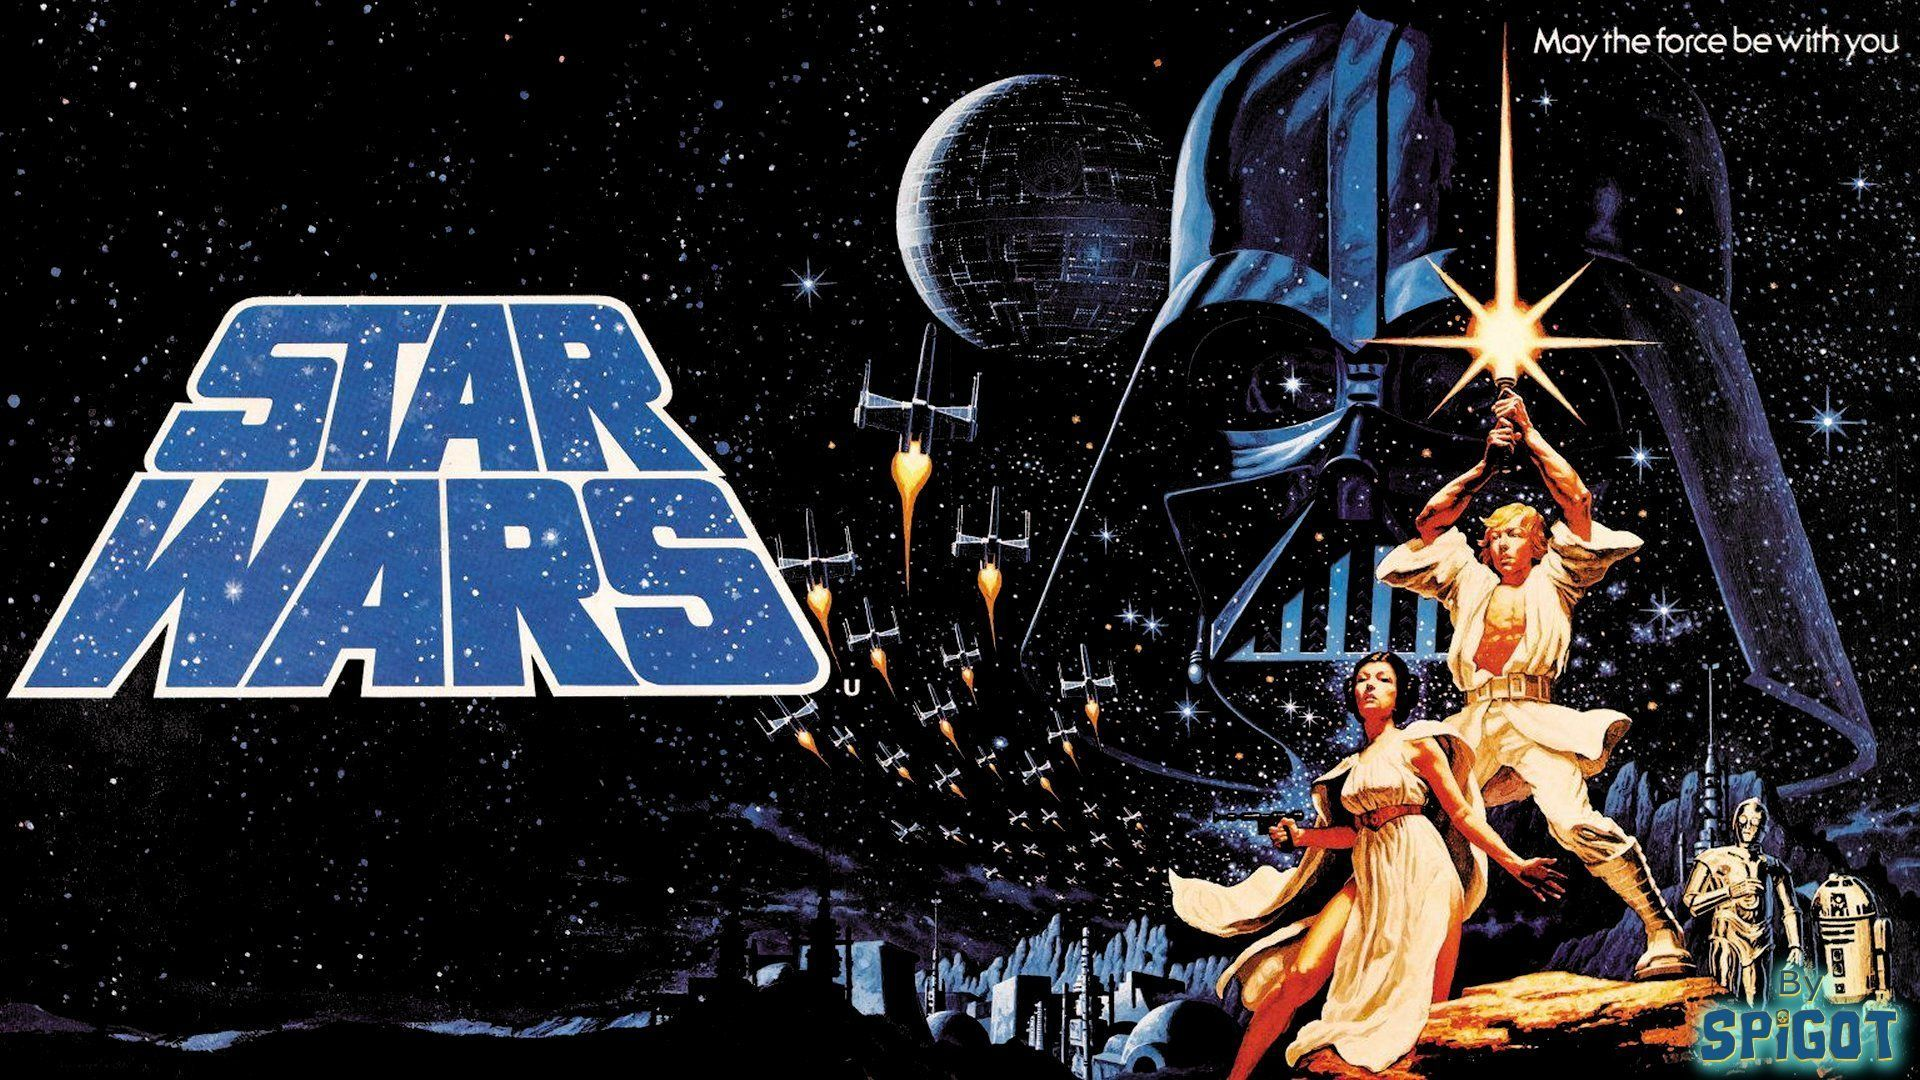 Largest Collection Of Star Wars Wallpapers For Free Download 1920x1080 HD